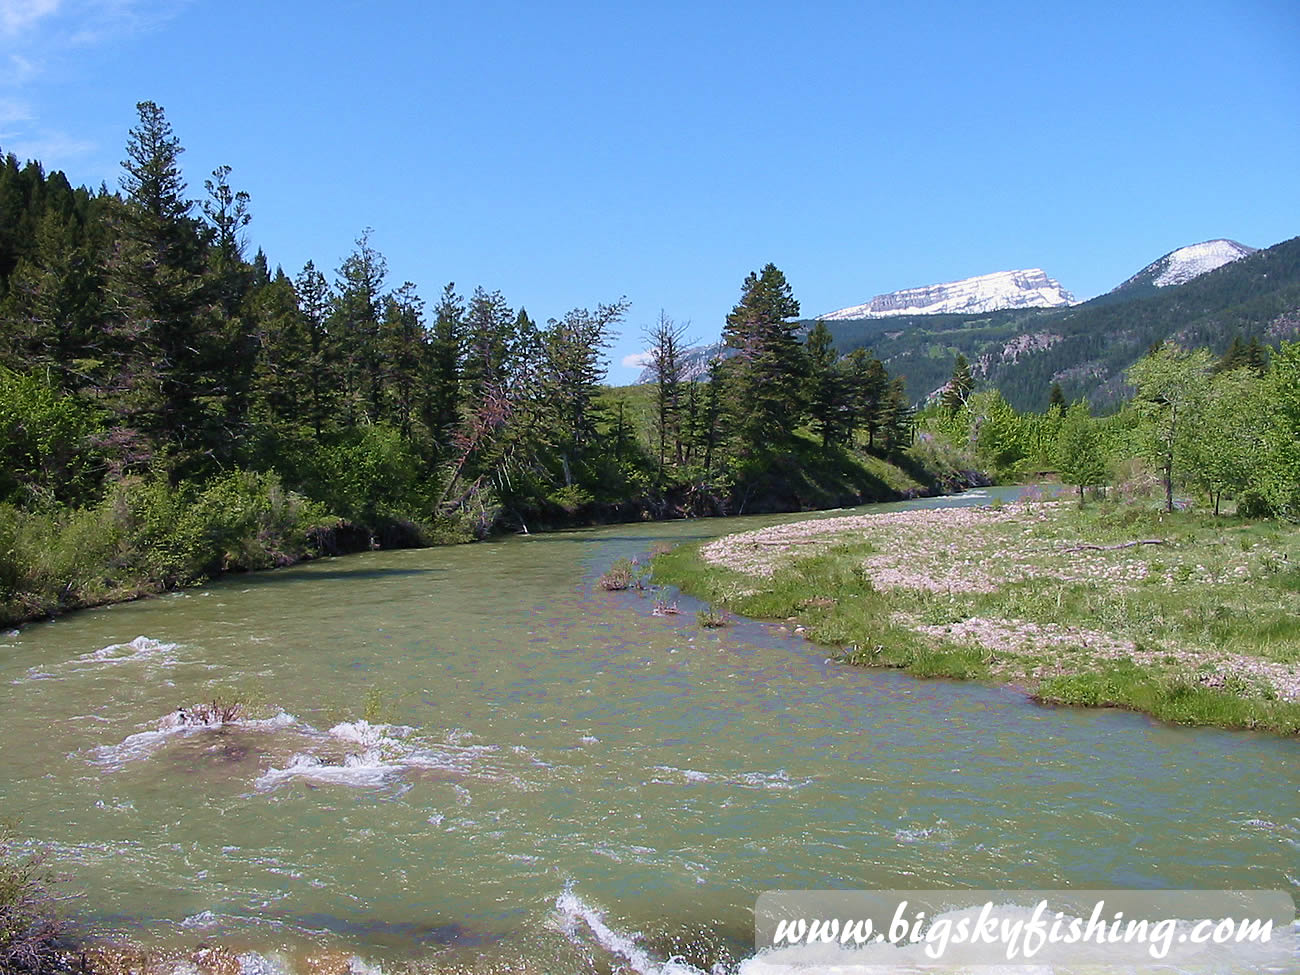 Dearborn river near rocky mountain front in montana for Big fish dearborn